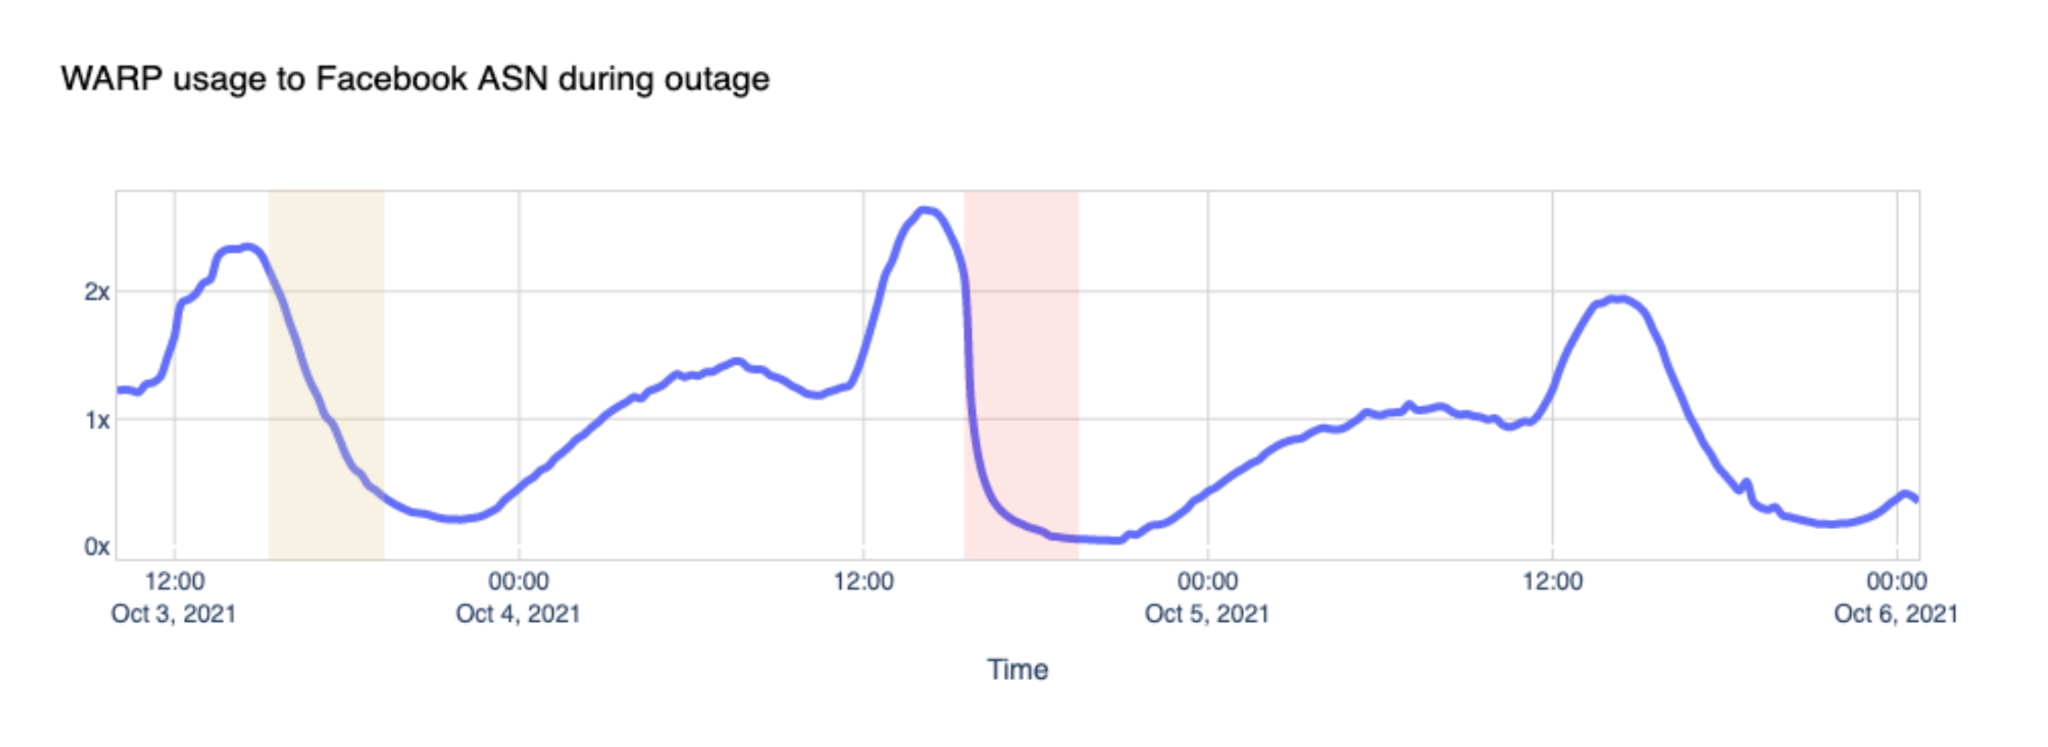 WARP usage to Facebook ASN during the outage